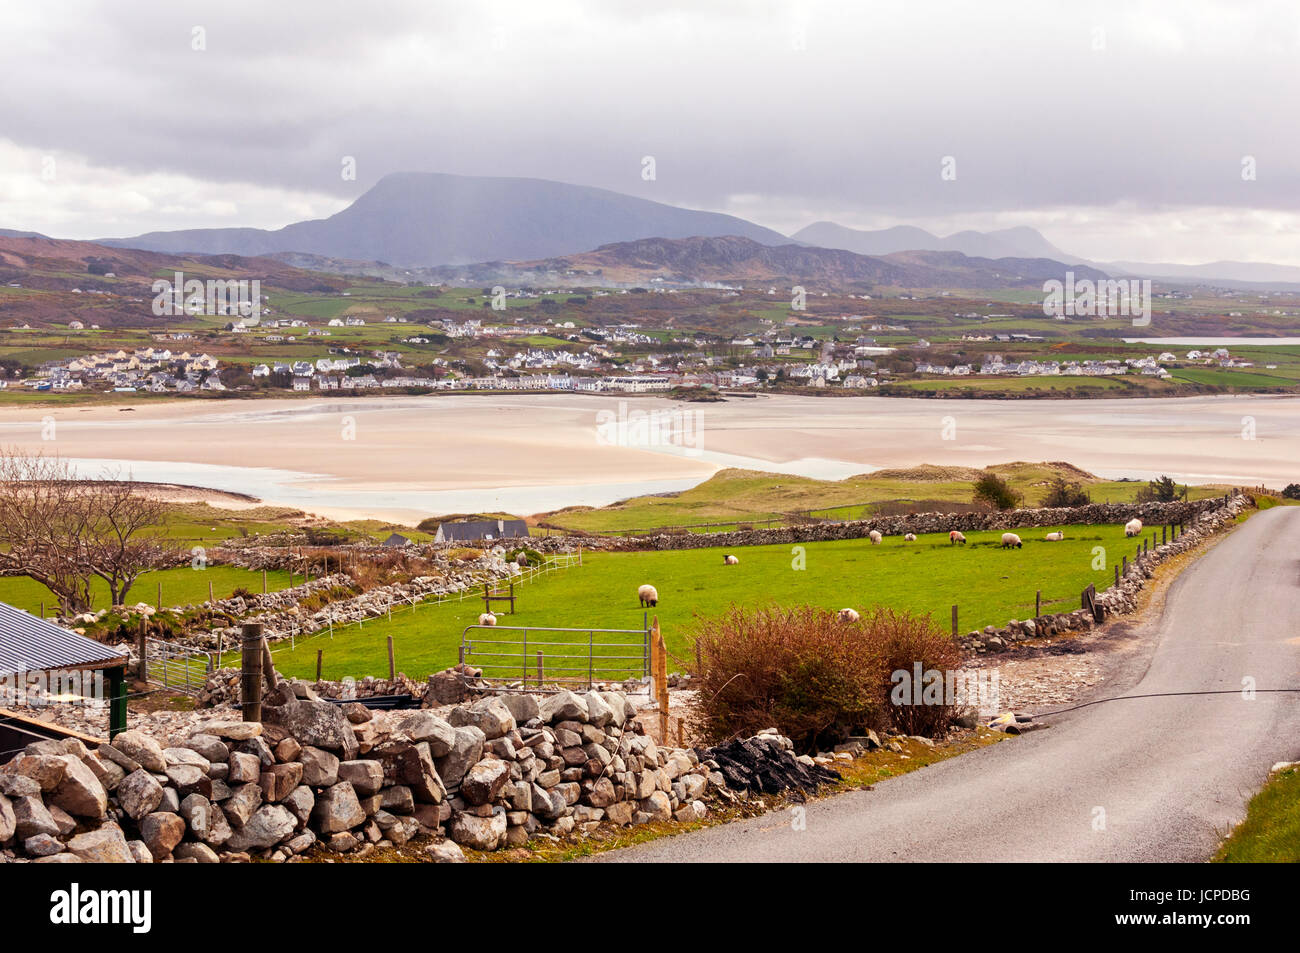 Views of Muckish Mountain, Dunfanaghy, County Donegal, Ireland - Stock Image